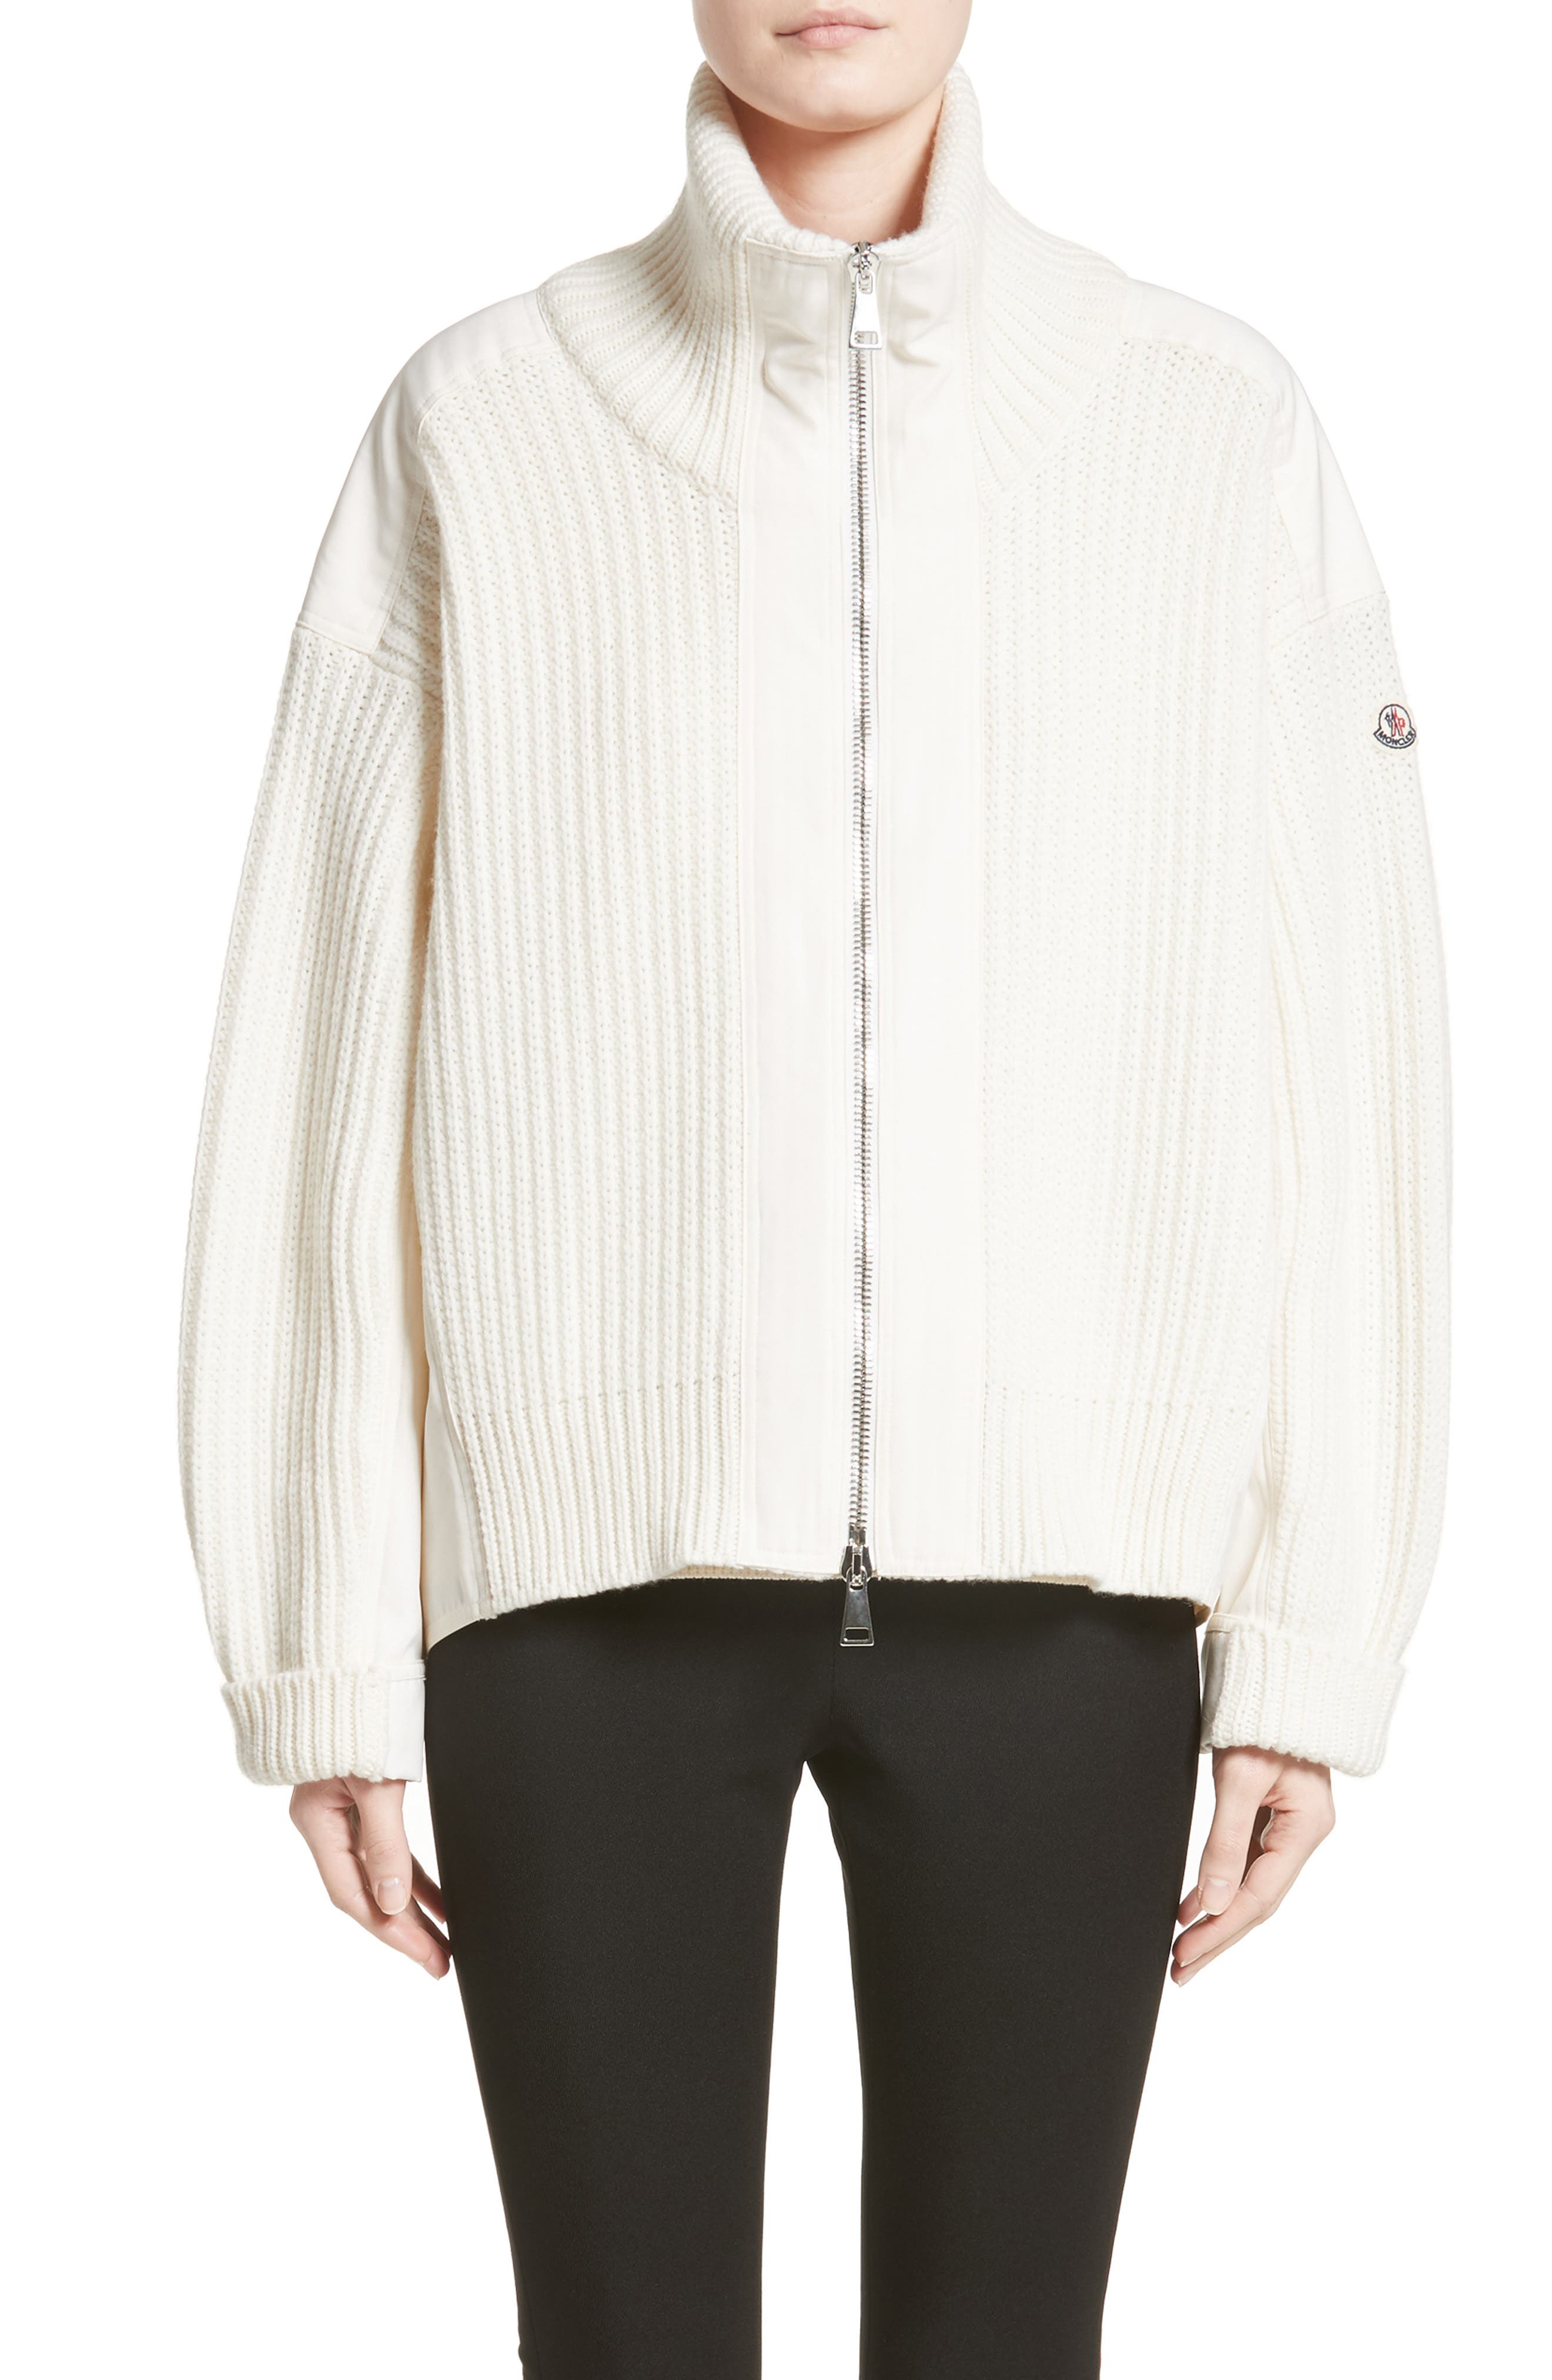 Alternate Image 1 Selected - Moncler Wool & Cashmere Cardigan